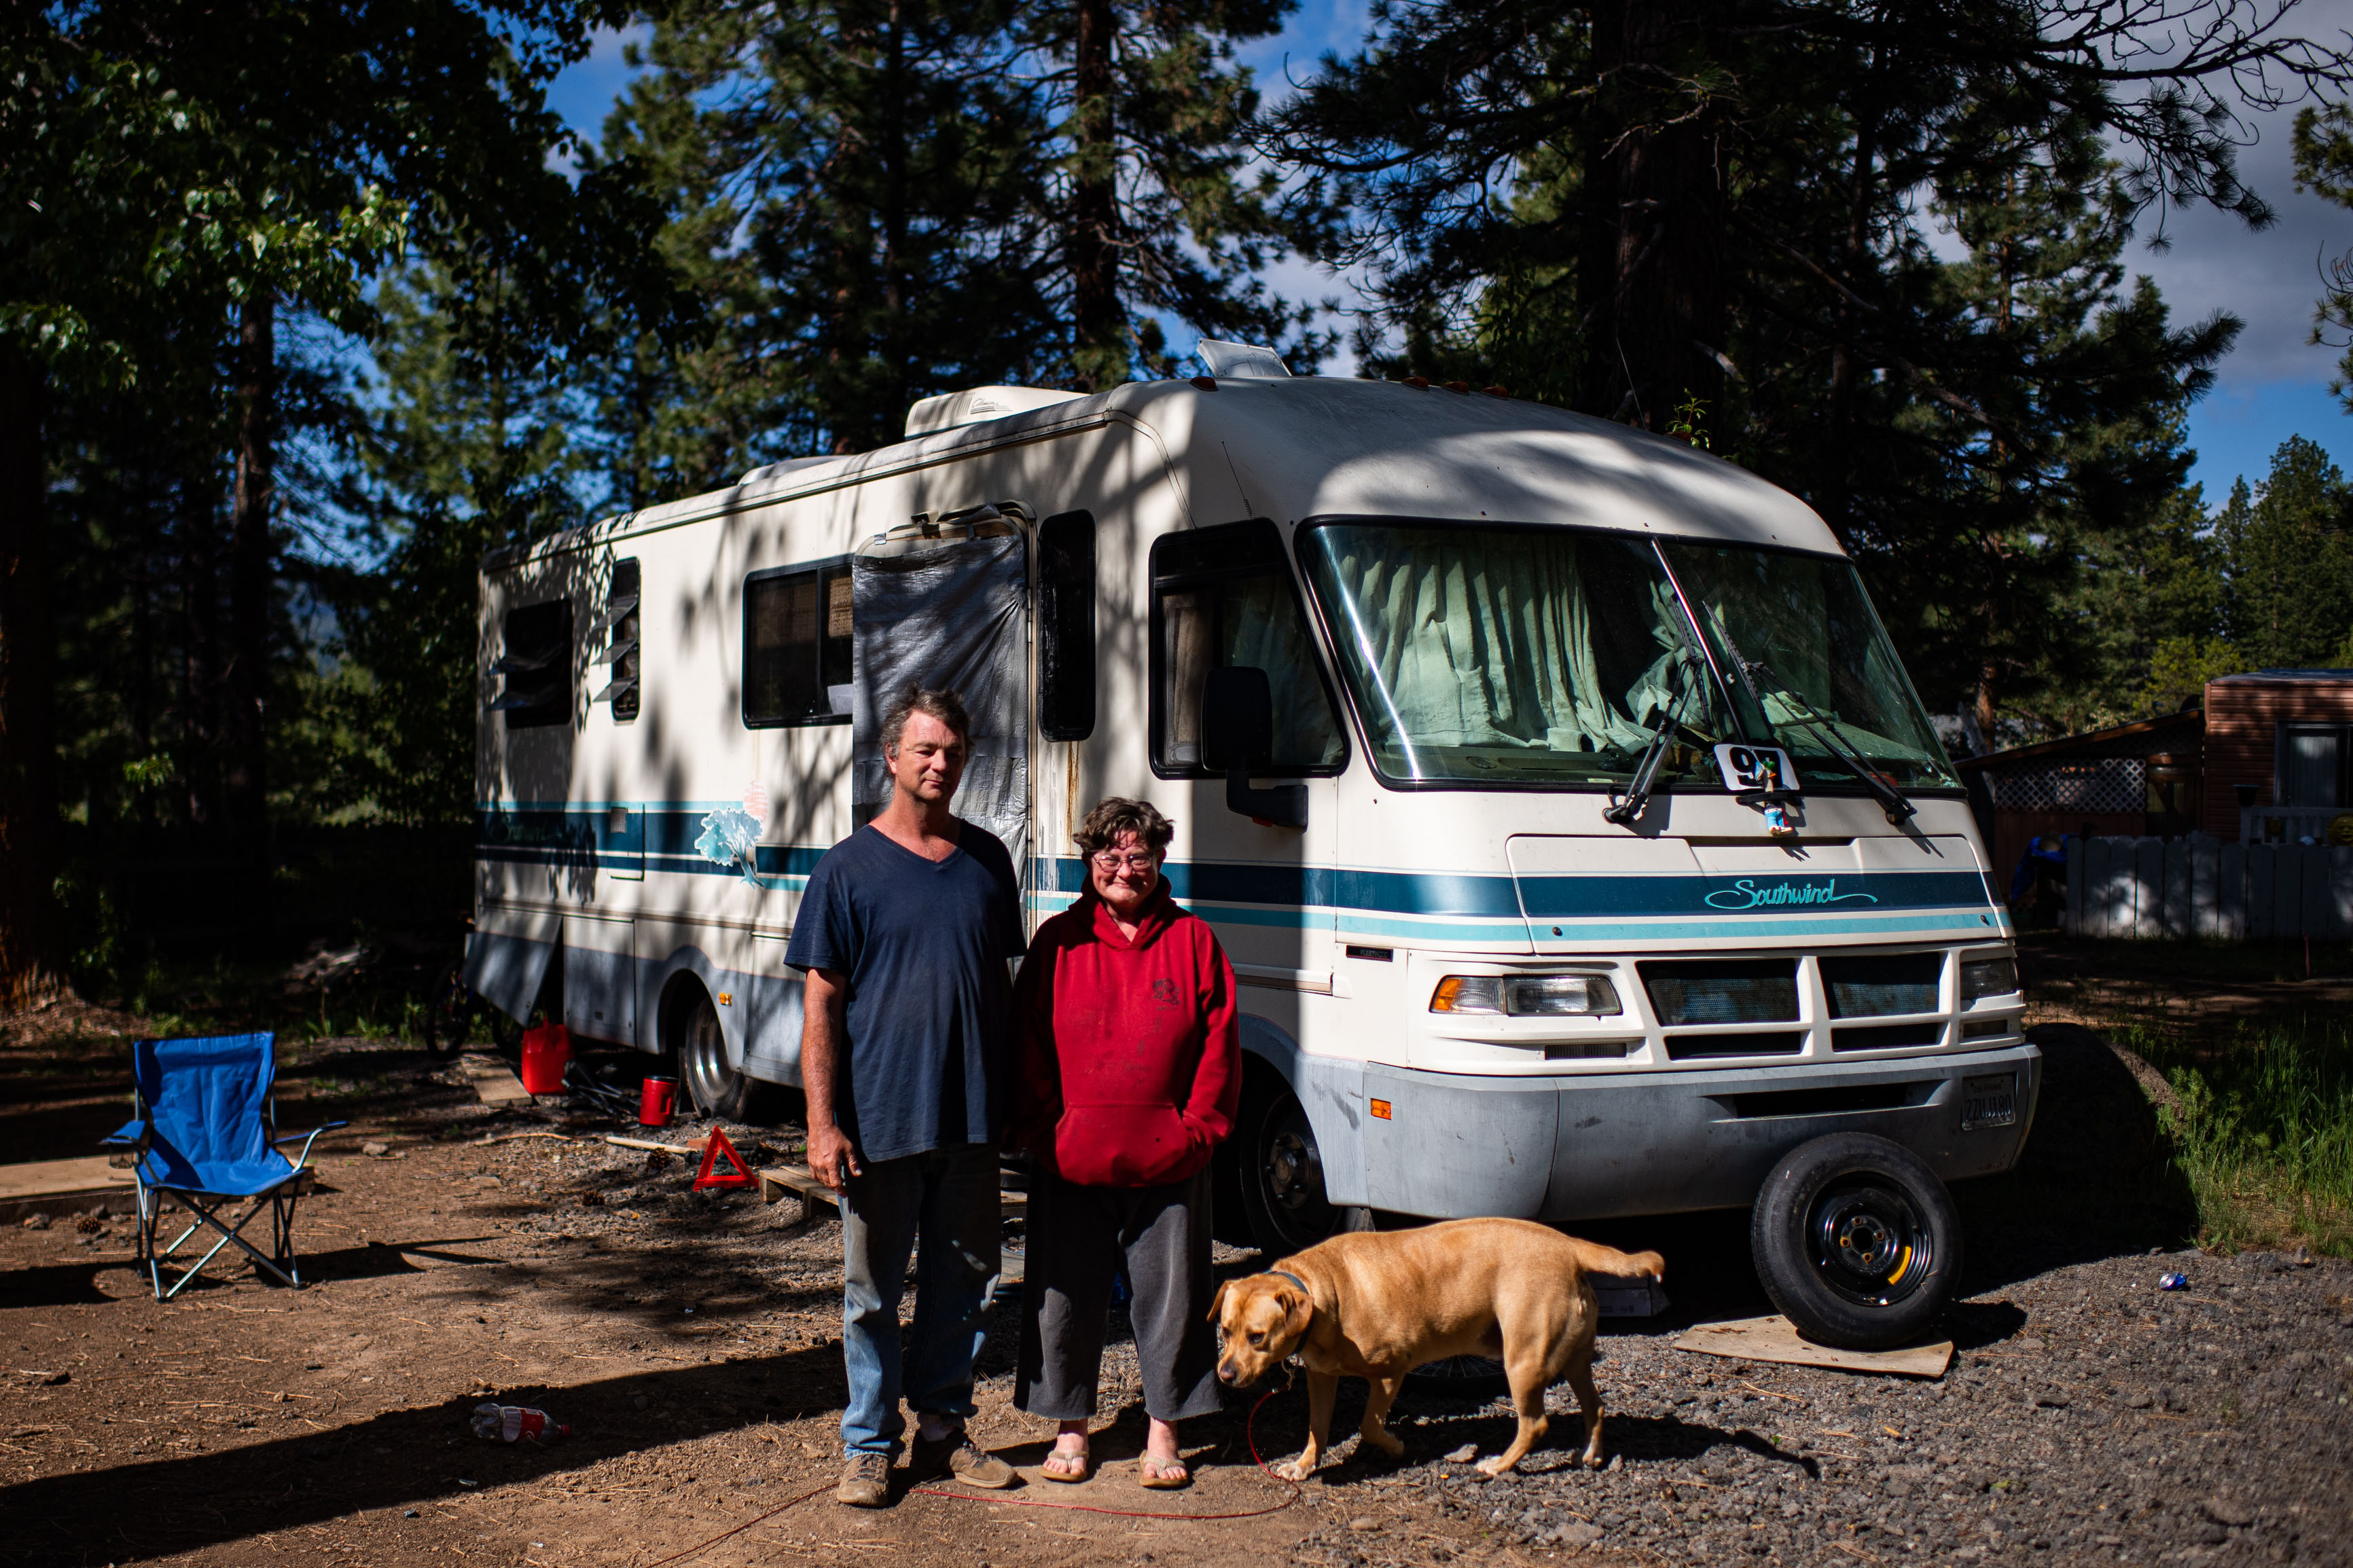 During the California fire, Dan Breland fled the RV camp where he was living with his wife, Suzette Breland, their 16-year-old son and dog, Meatball. MUST CREDIT: Washington Post photo by Salwan Georges